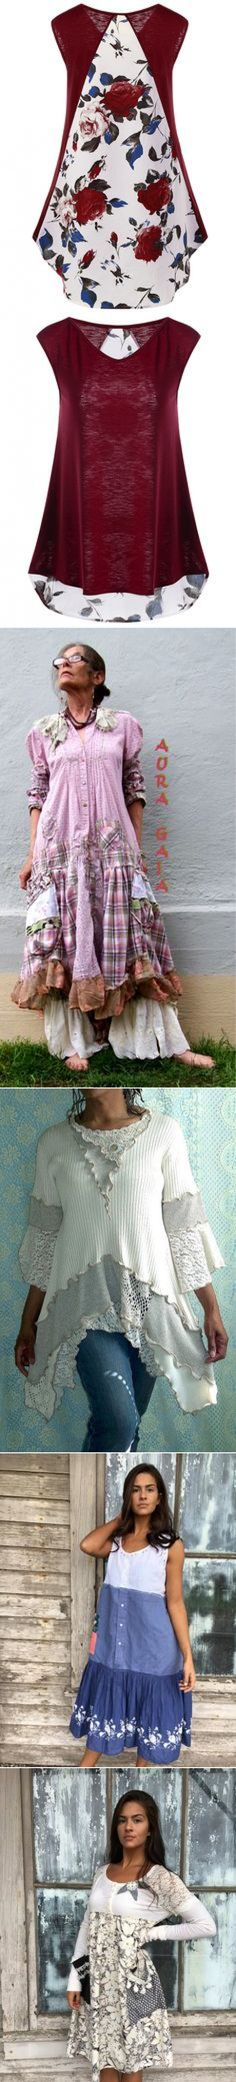 Upcycled Clothing в Pinterest